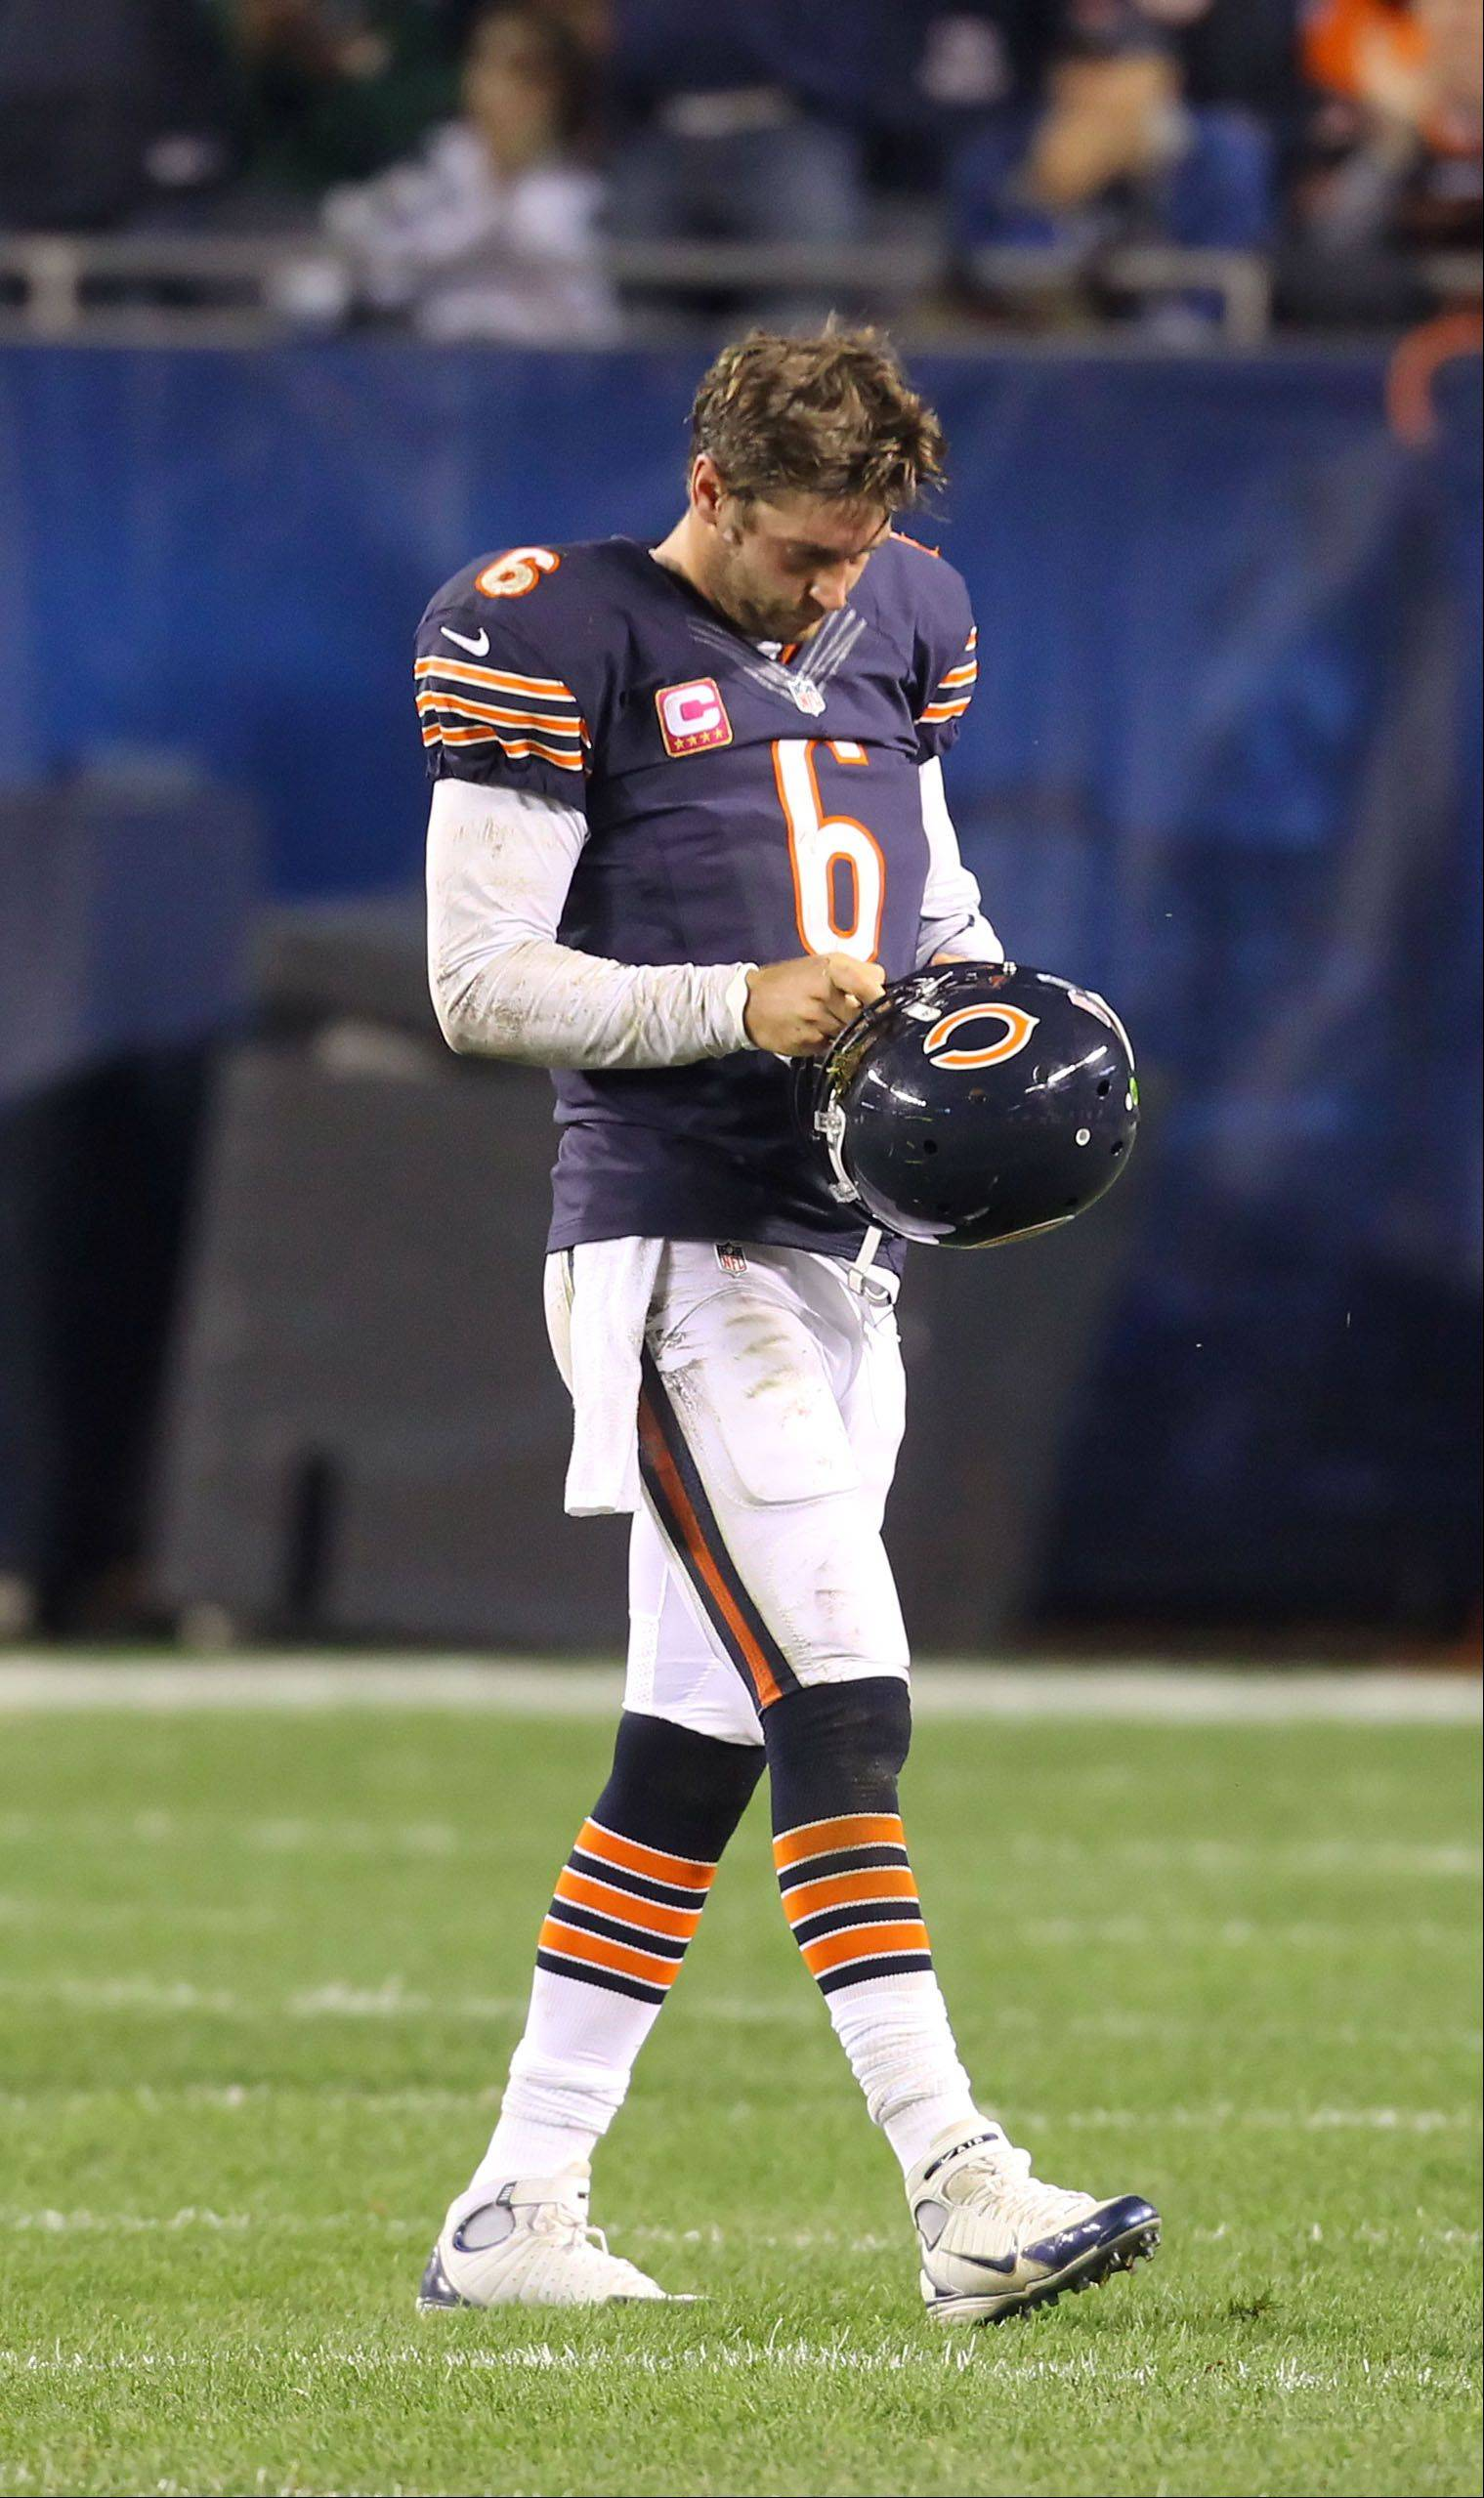 Chicago Bears quarterback Jay Cutler walks off the field after getting injured by Detroit Lions defensive tackle Ndamukong Suh.